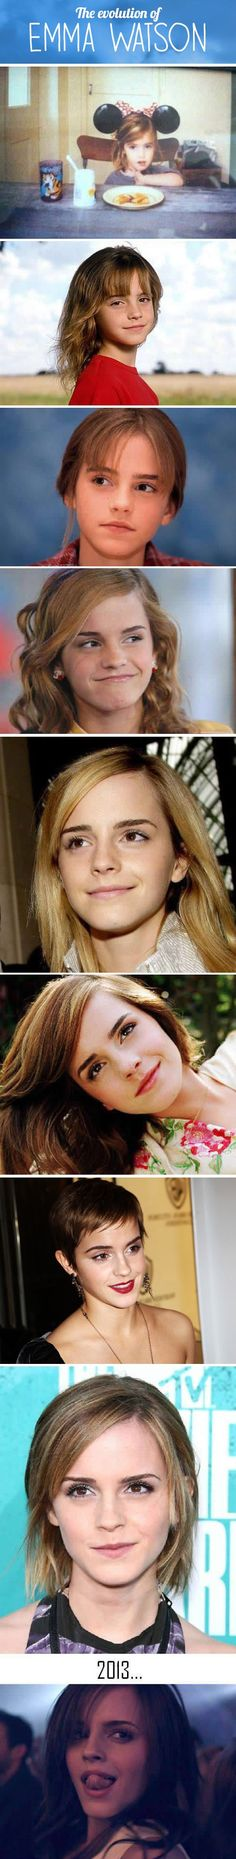 The evolution of Emma Watson